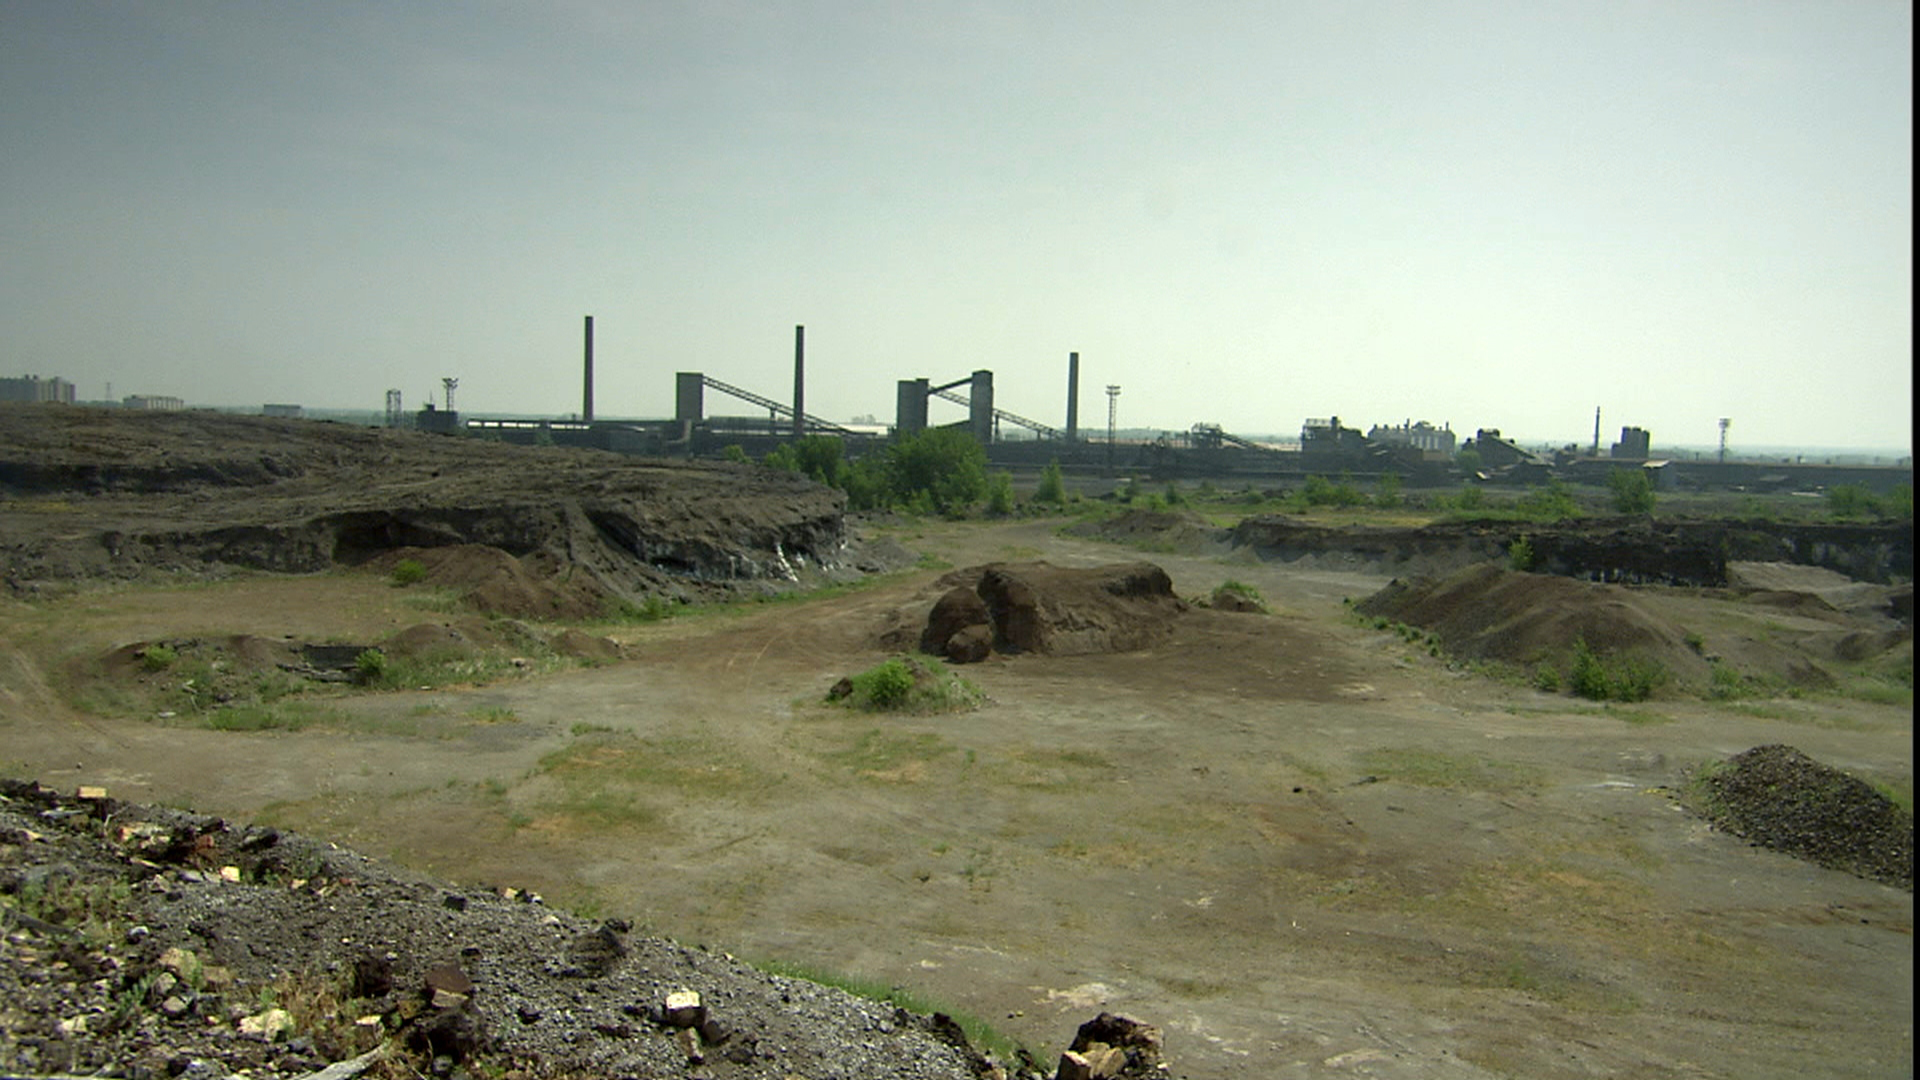 WHAT IS A BROWNFIELD SITE?